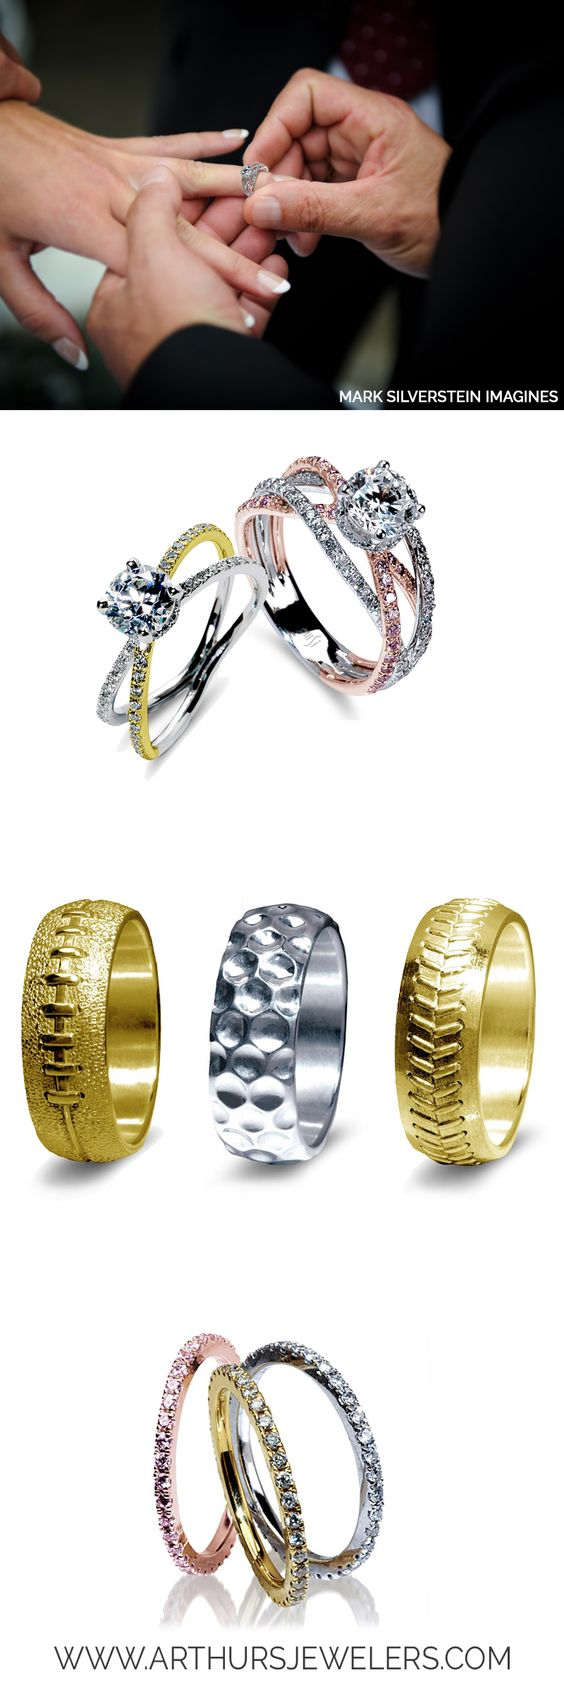 sports wedding bands Mark Silverstein Imagines see his entire collections of engagement rings sports wedding bands and